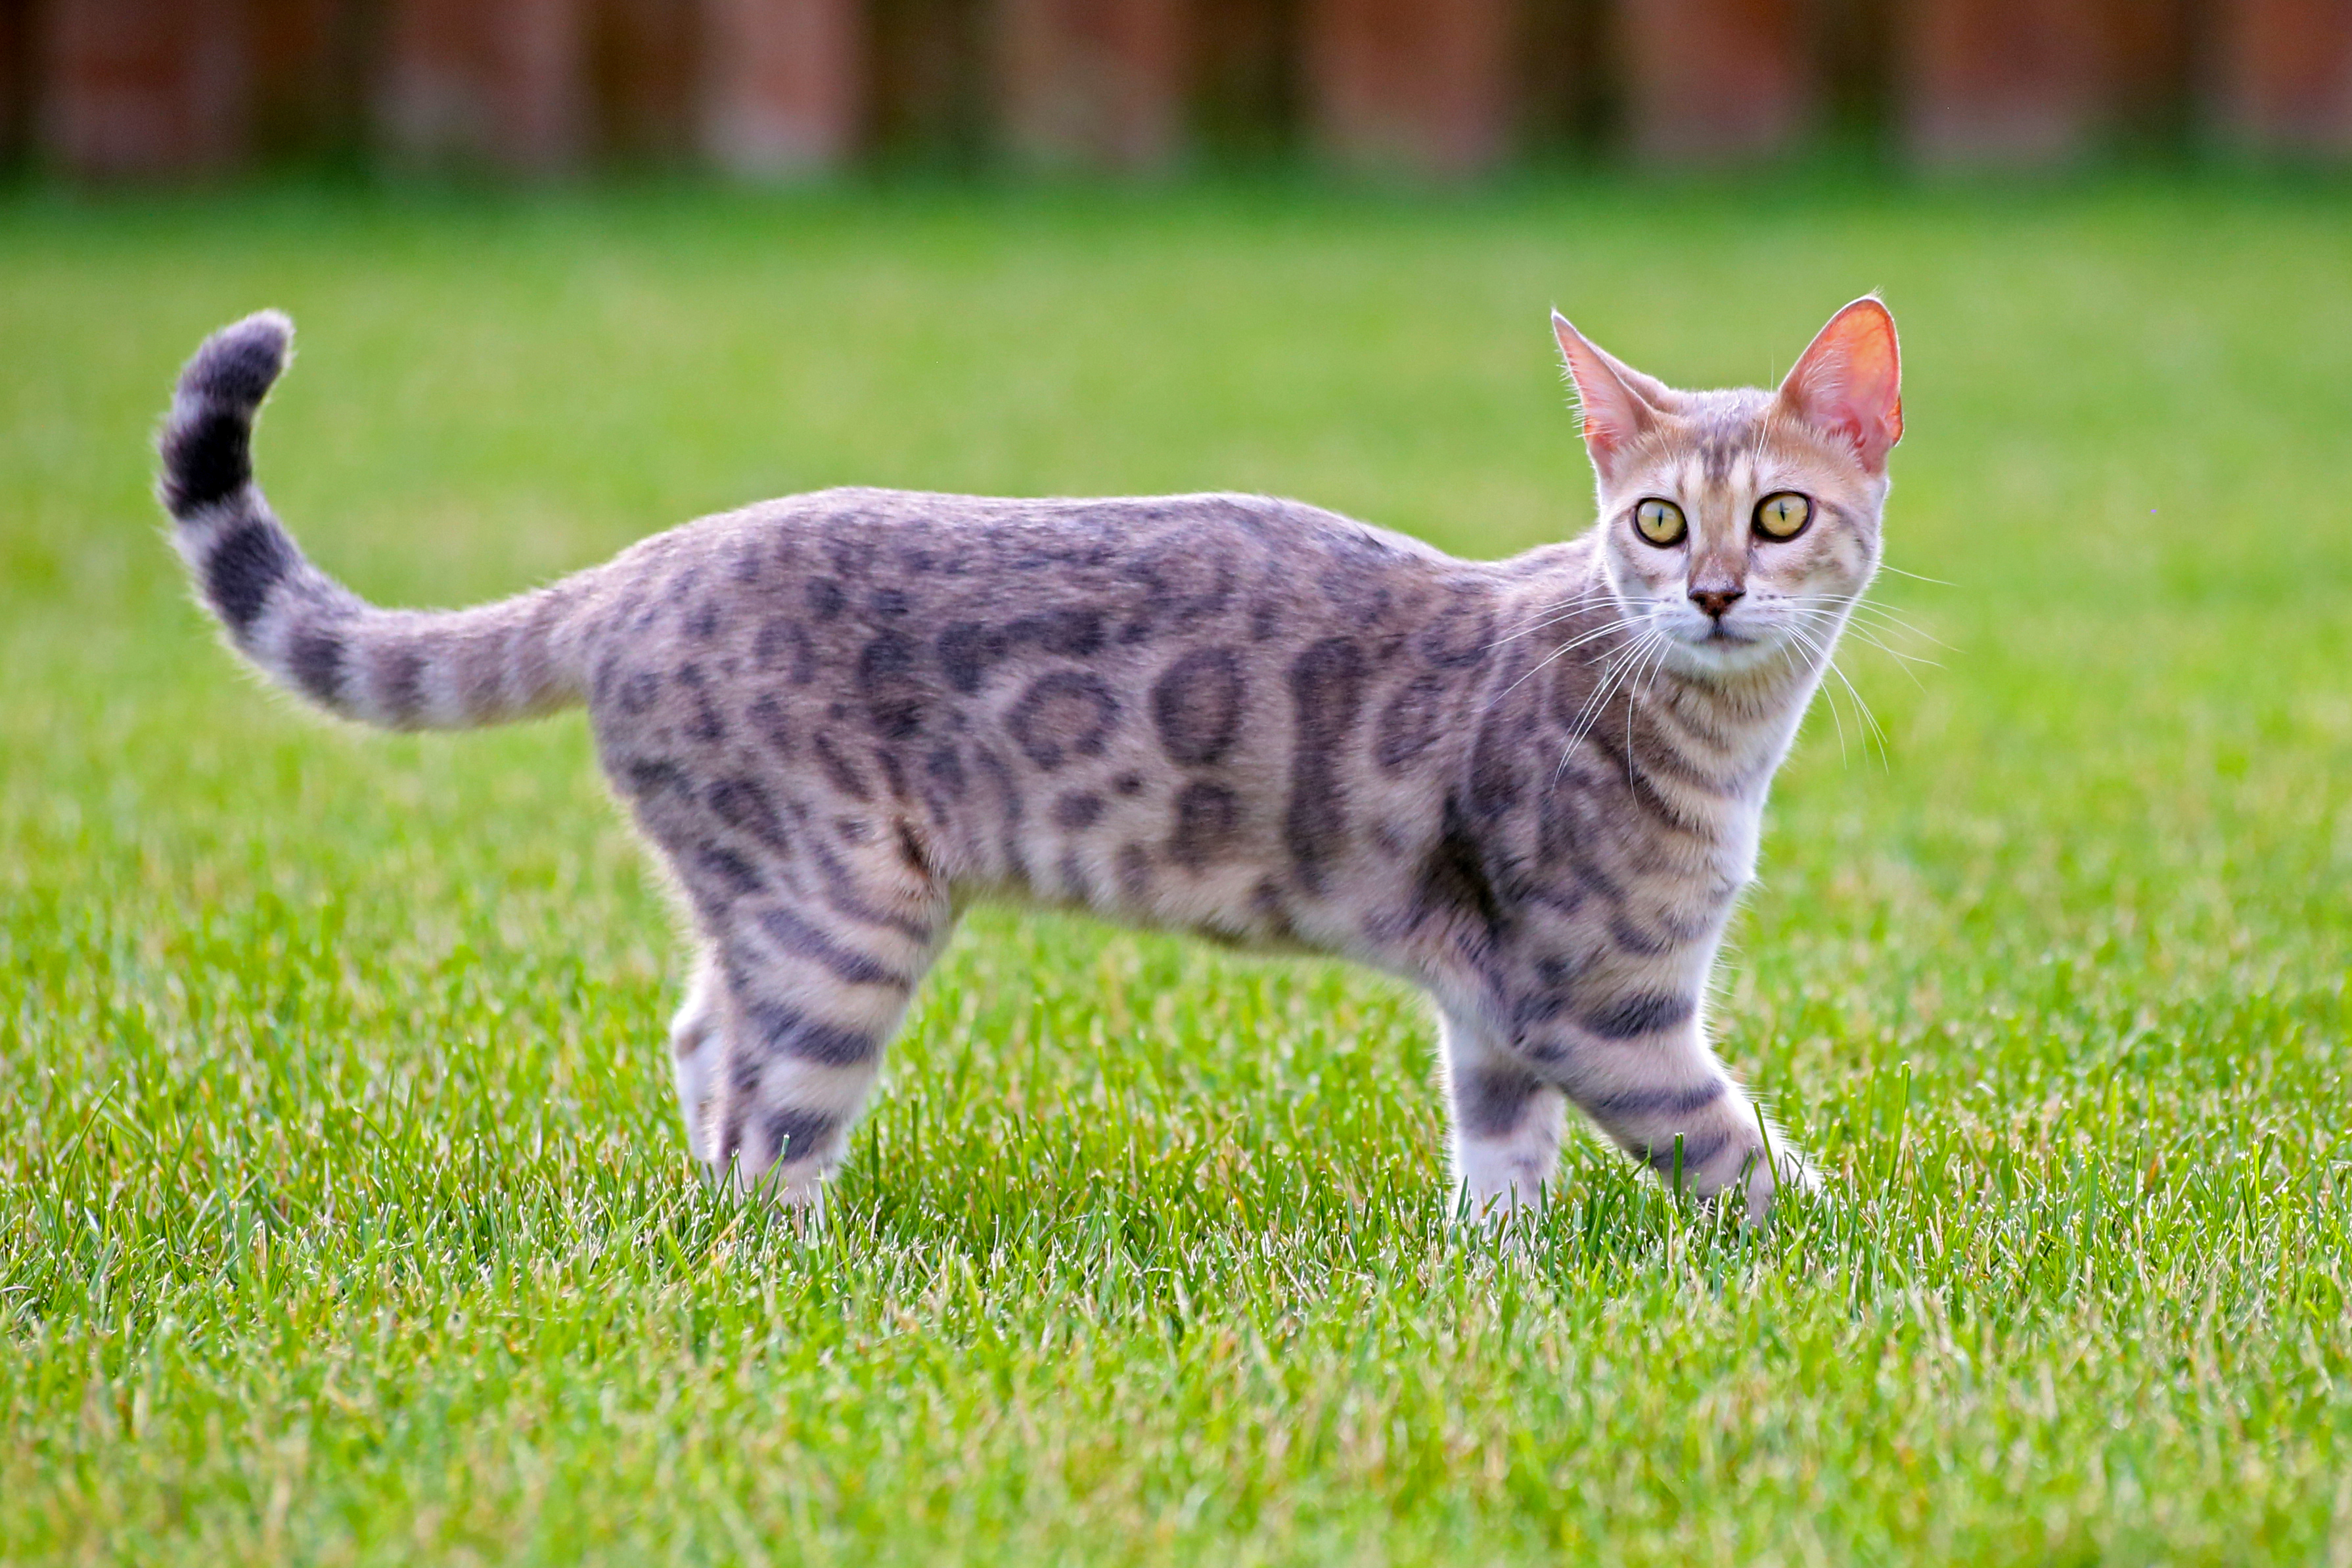 Blue bengal kitten: taste of freedom - 2, Lawn, Kitten, Grass, Leopard, HQ Photo